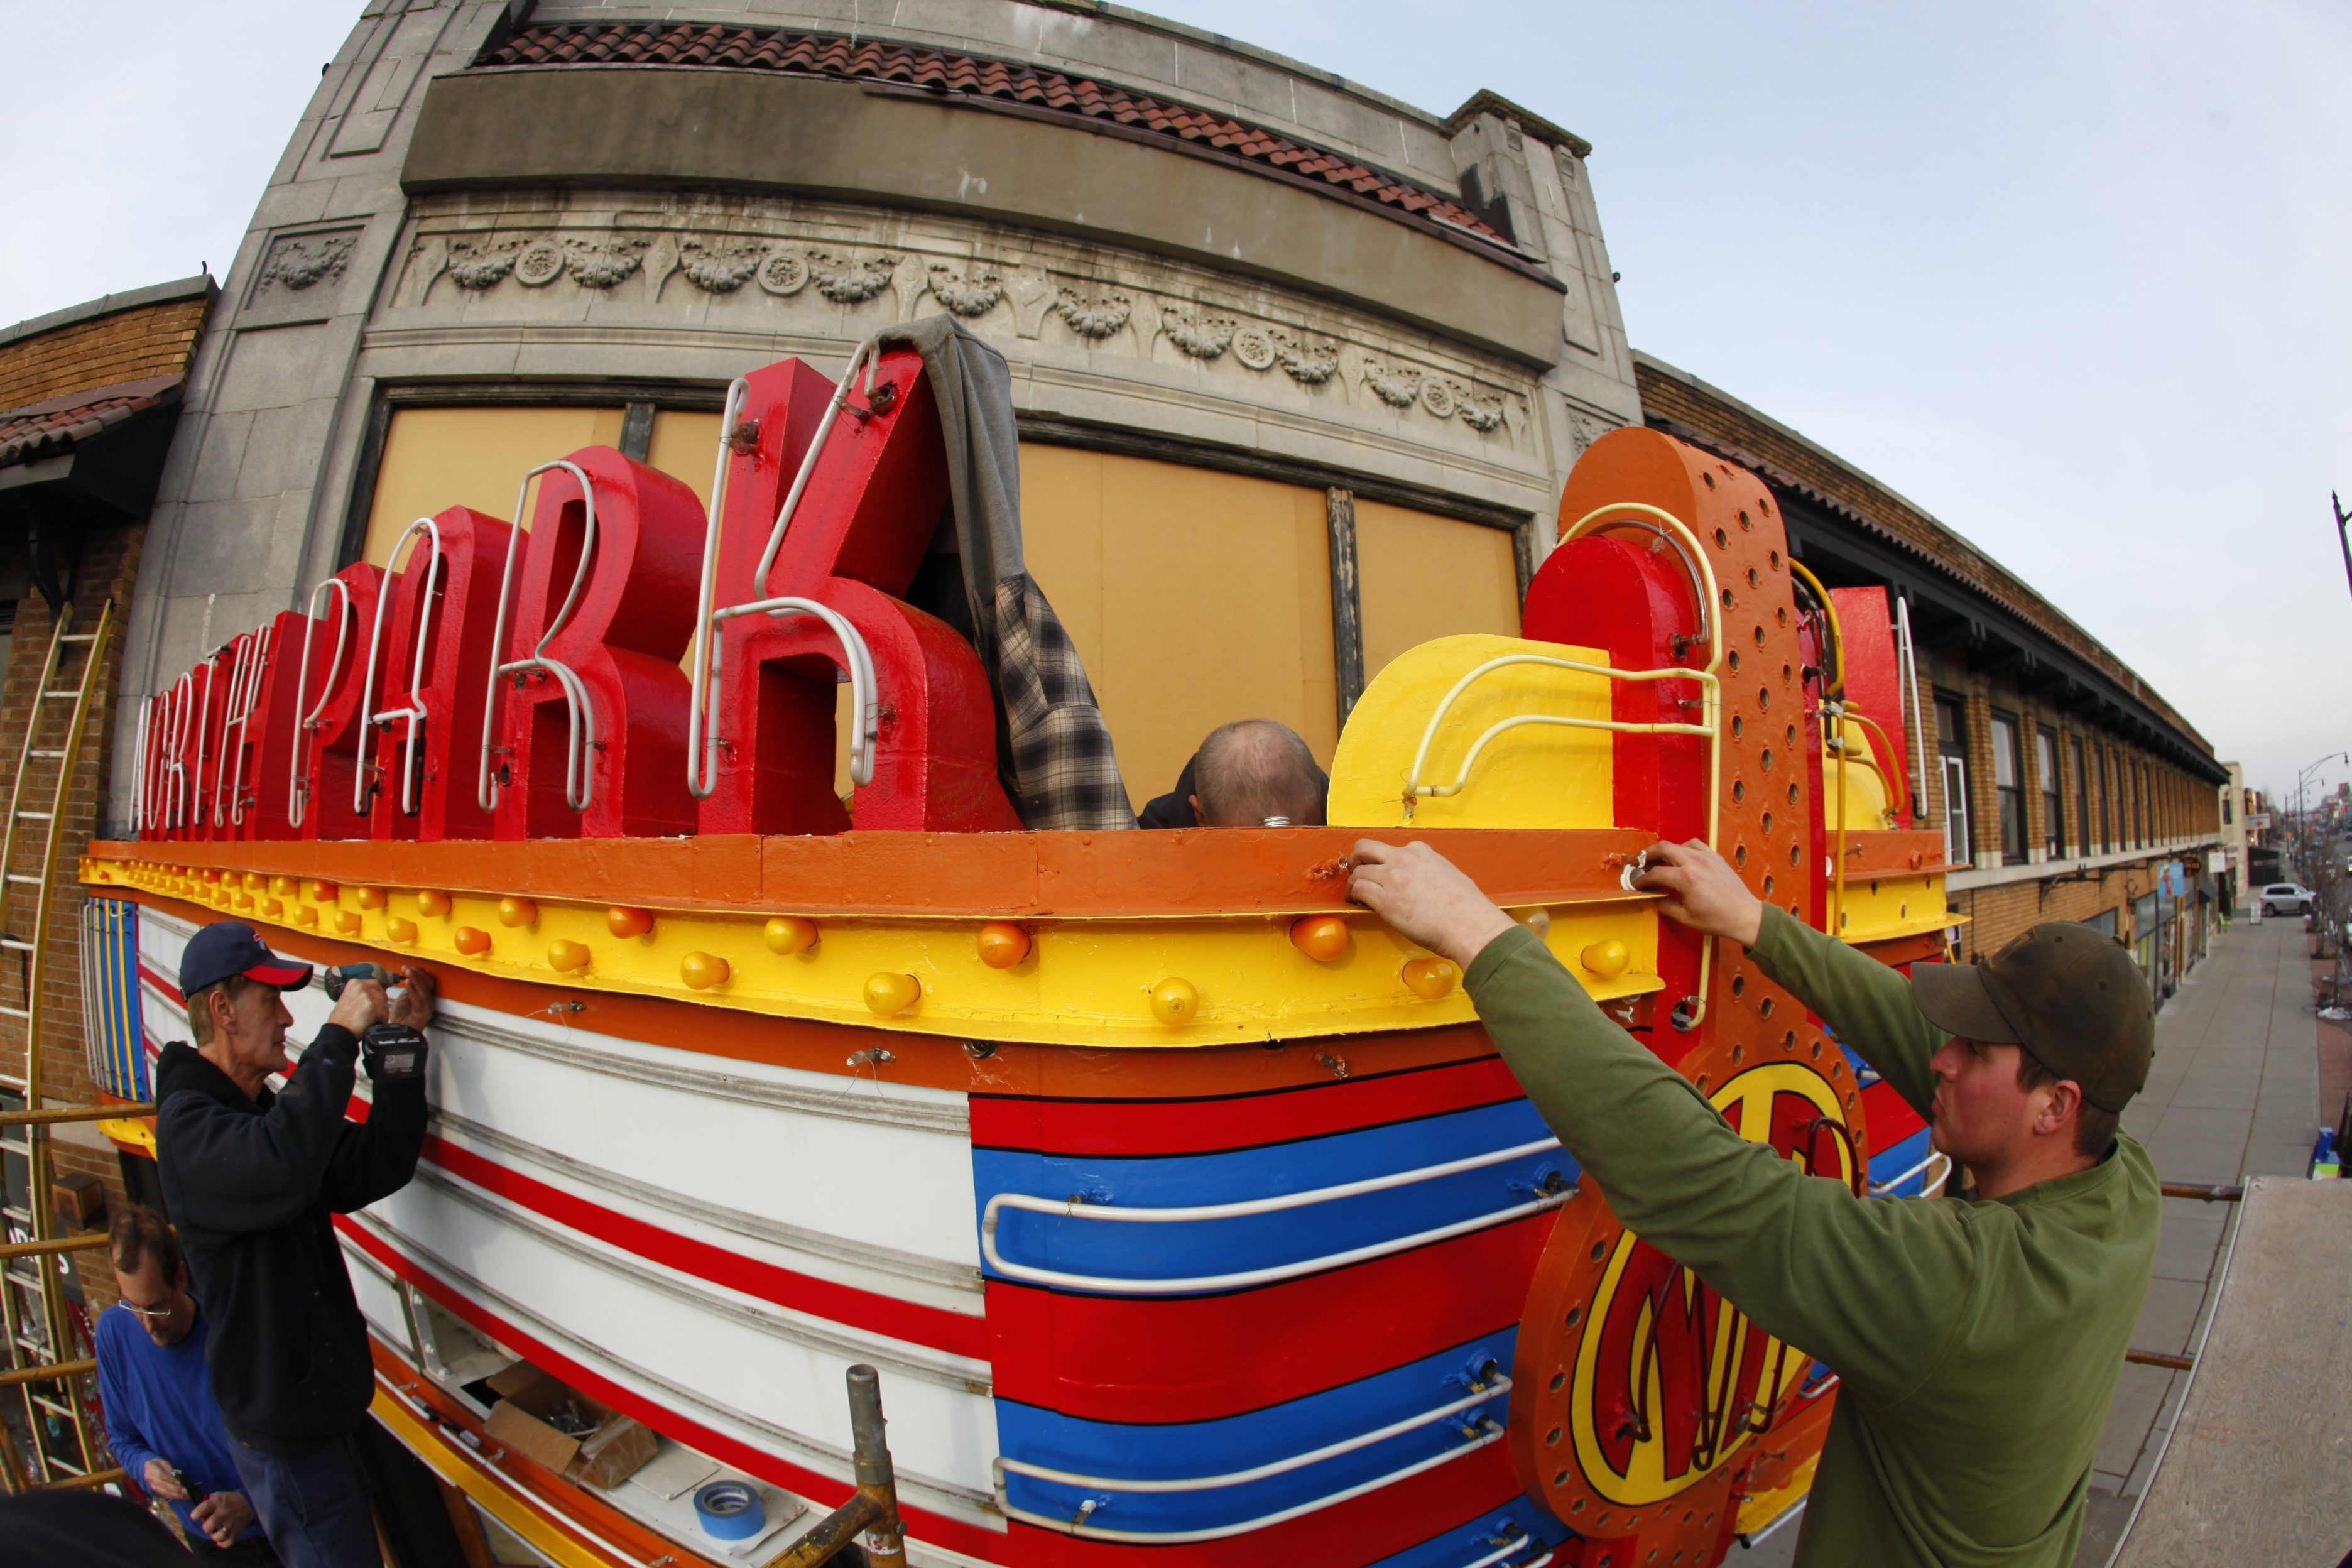 Mike Golubski, left, and Kevin Ernst from Flexlume install LED lights on the North Park Theatre's iconic marquee.